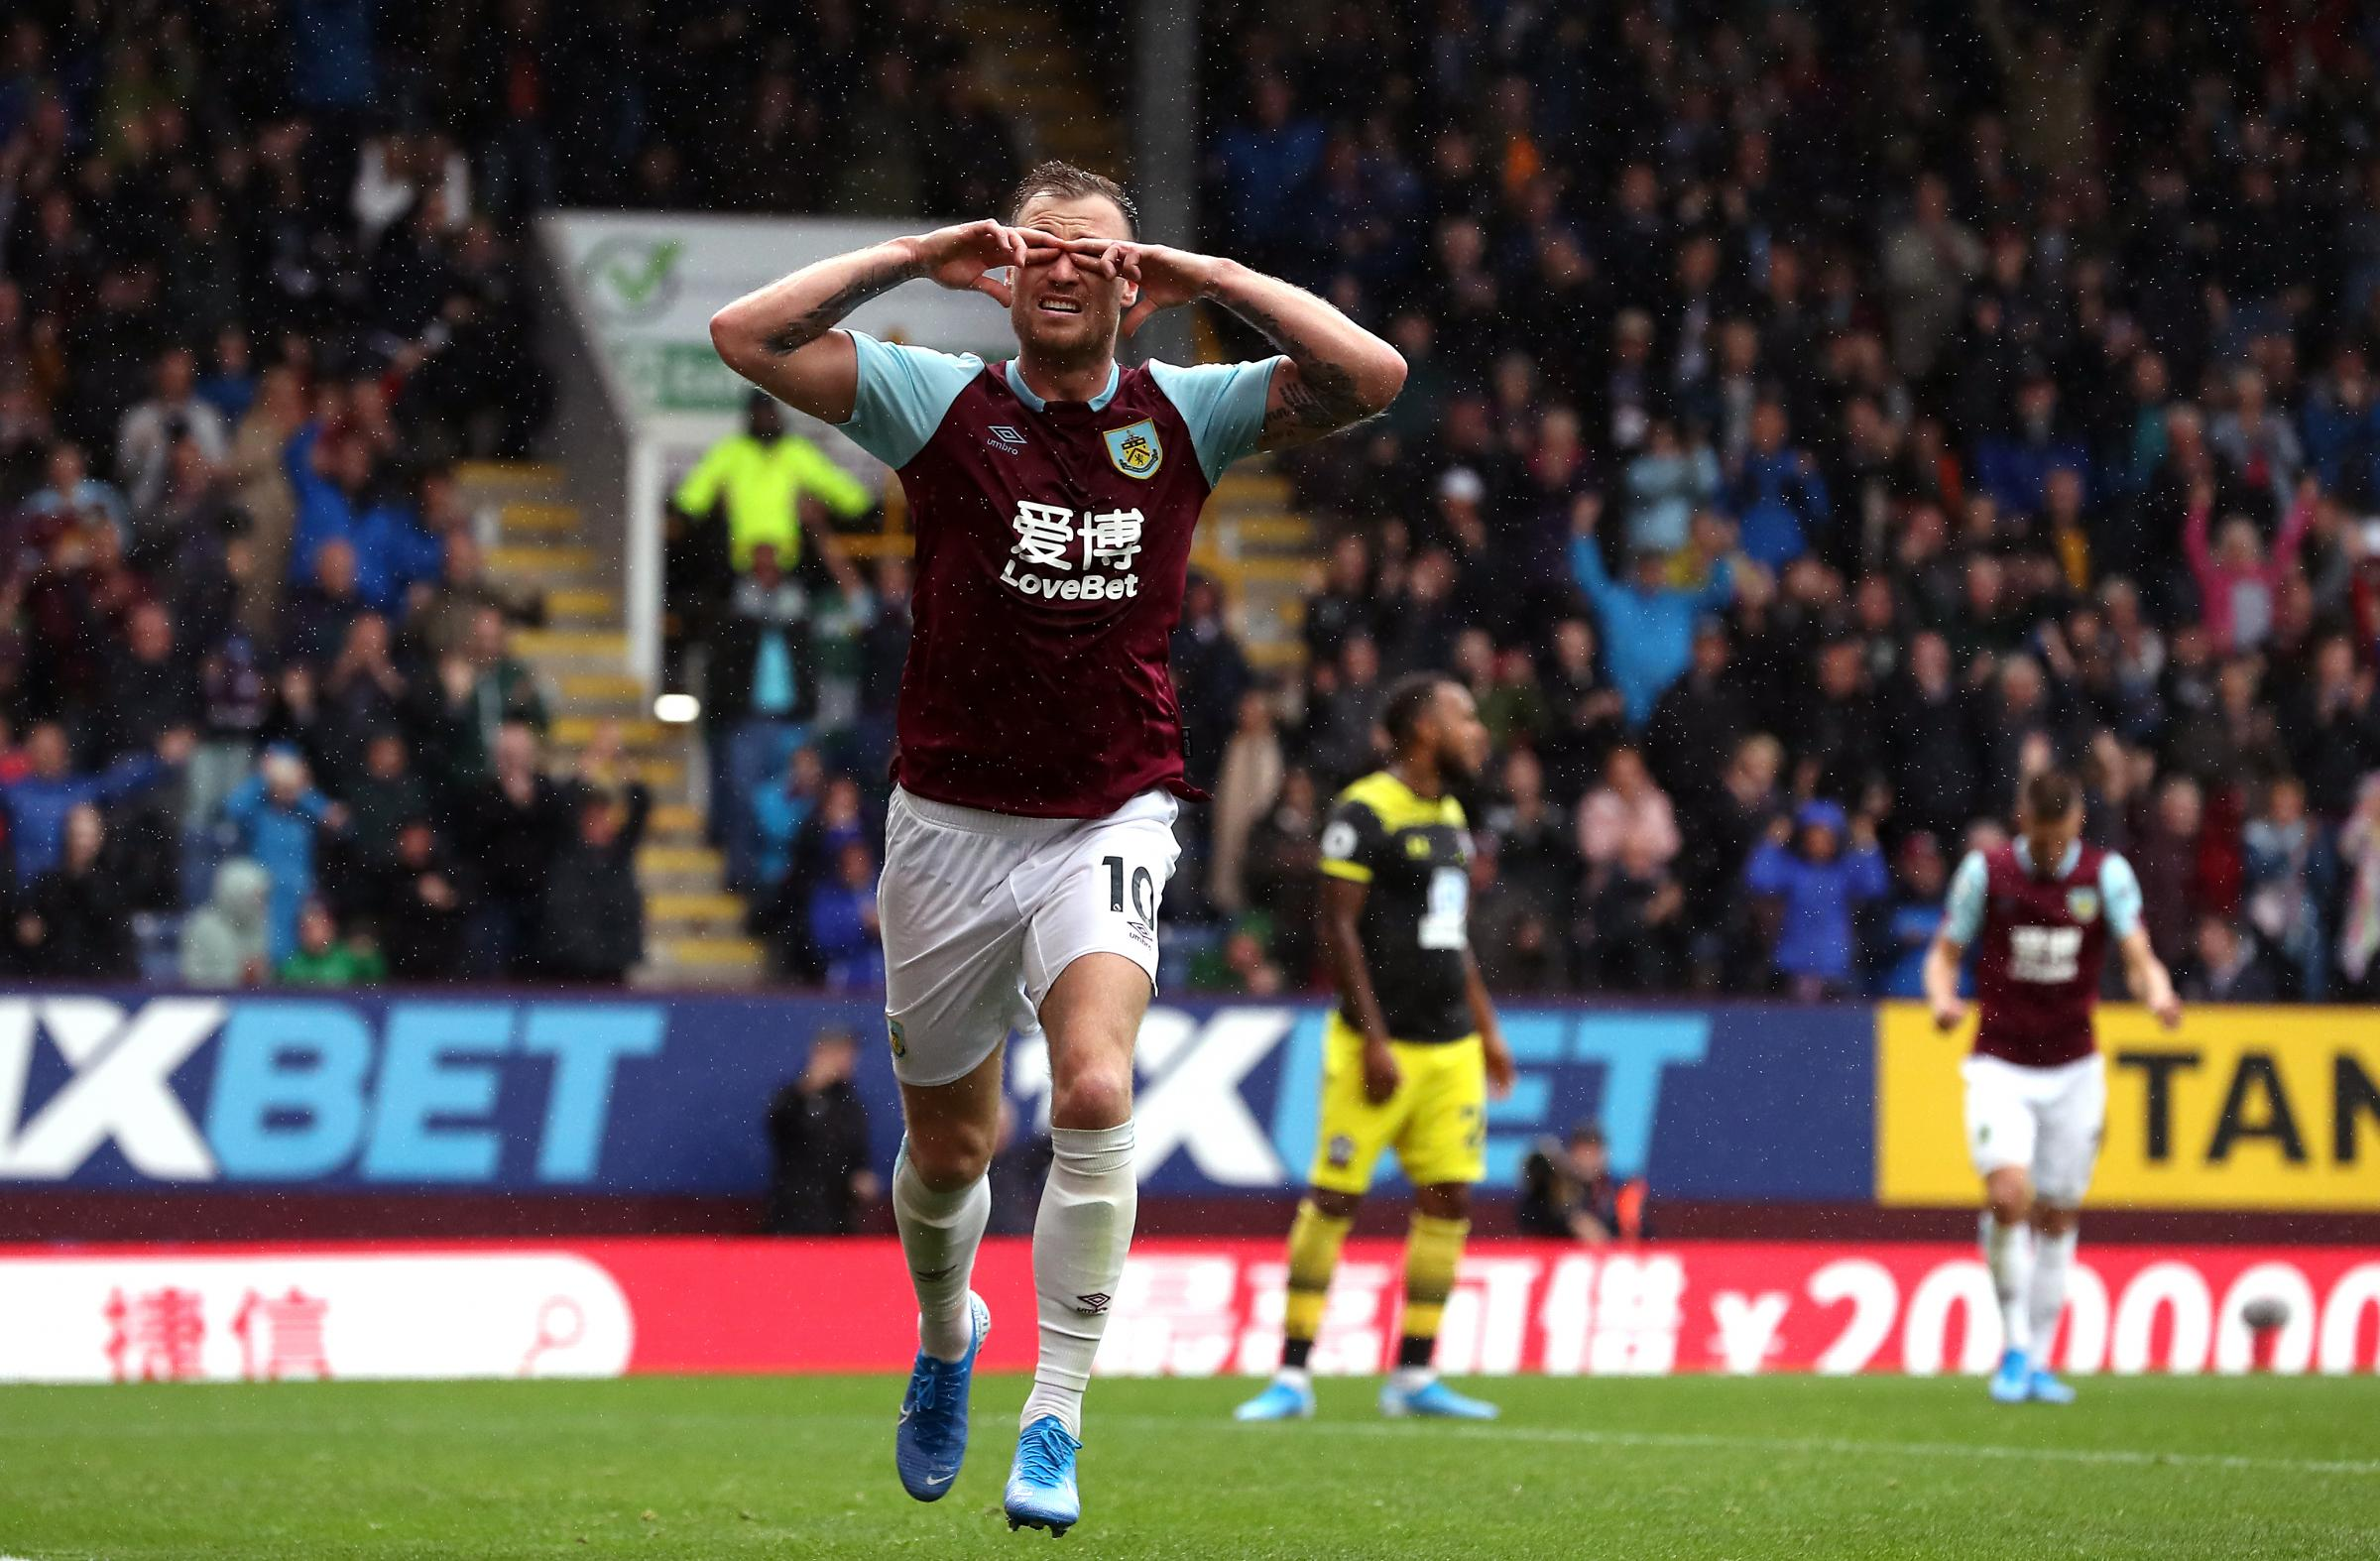 Burnley striker Ashley Barnes signs extended contract